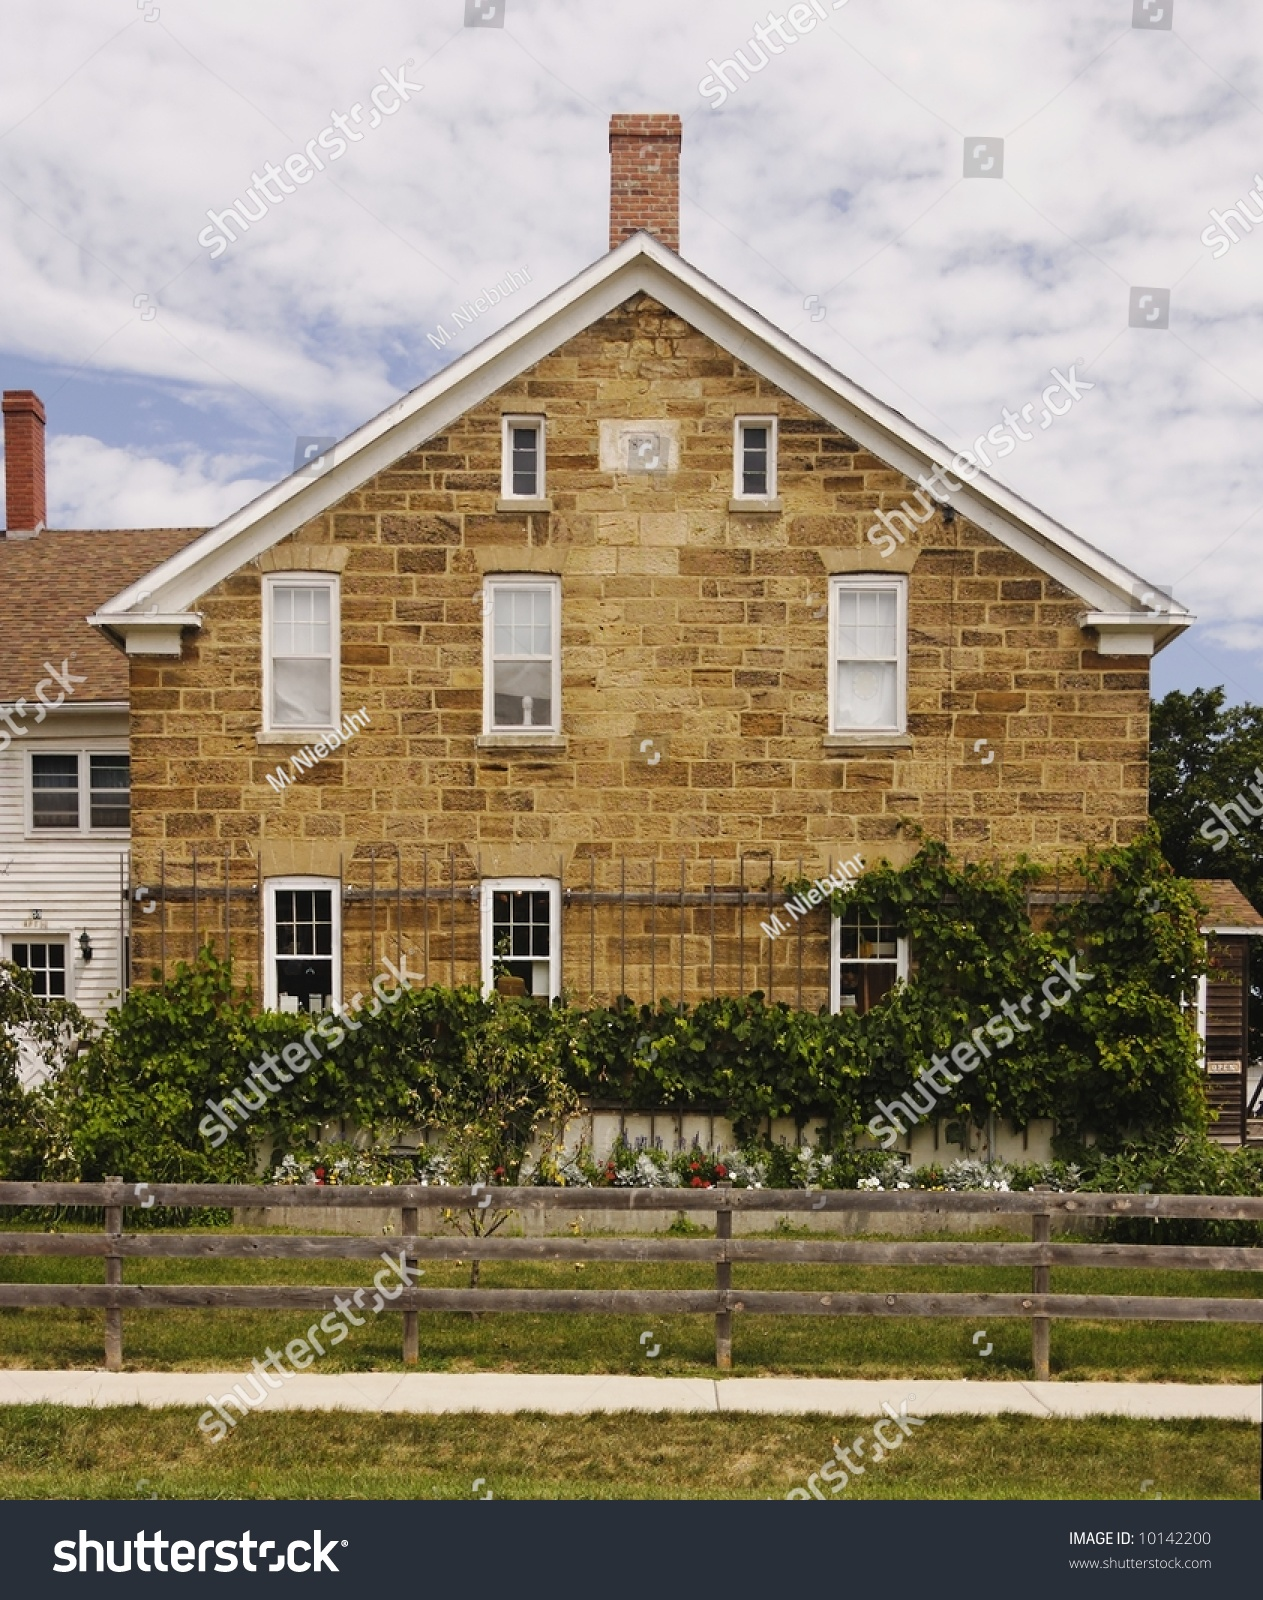 Historic Home Elevation : A historic colonial style gable roof stone facade end